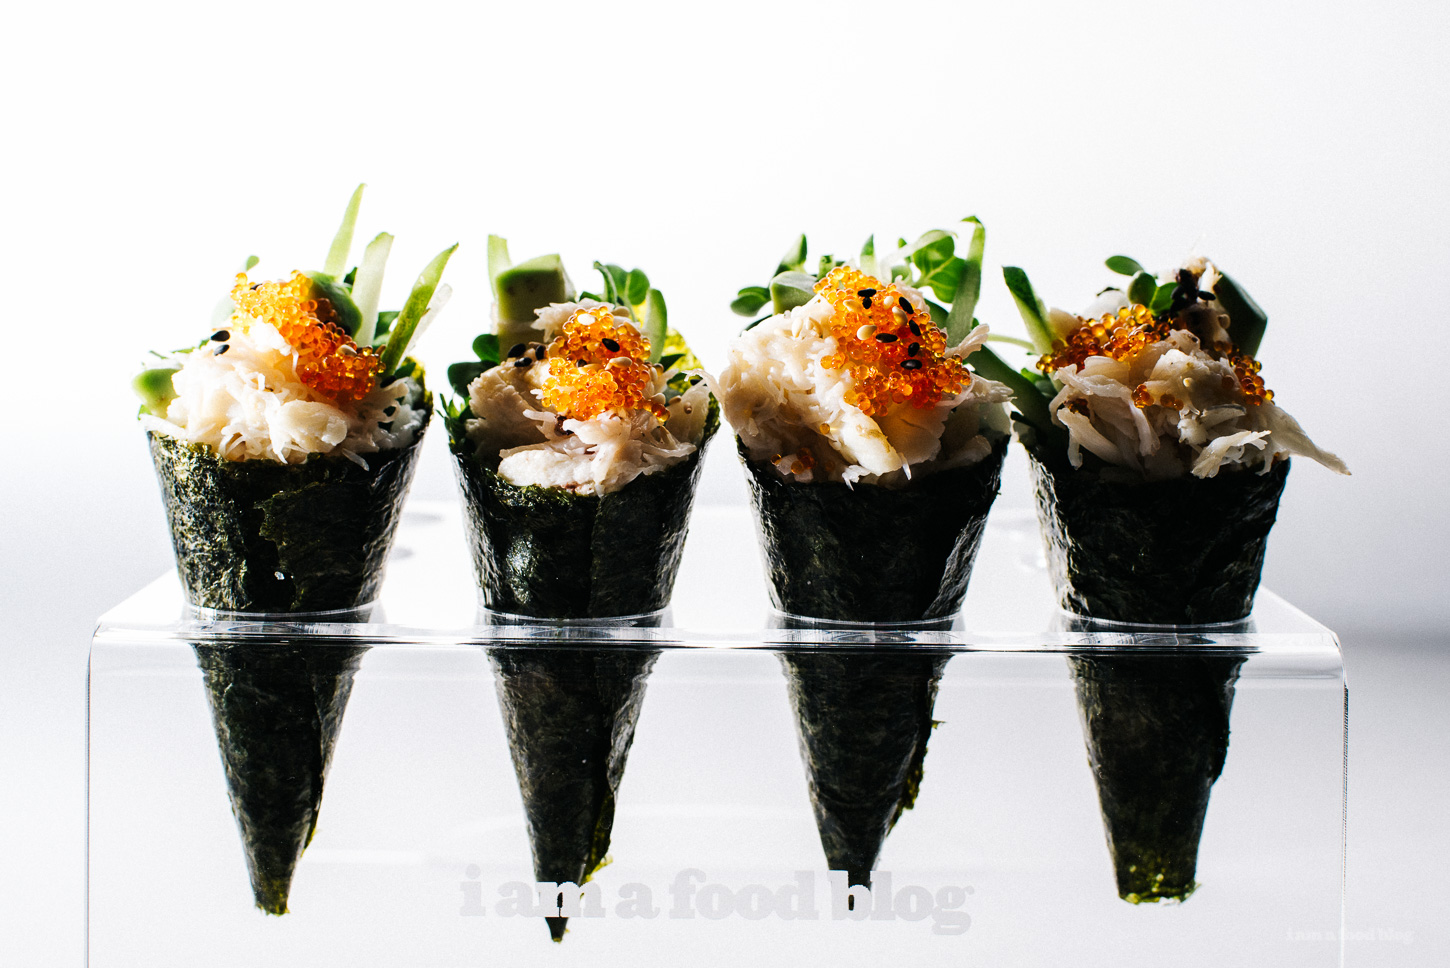 Seaweed cones are a new take on the famous dish